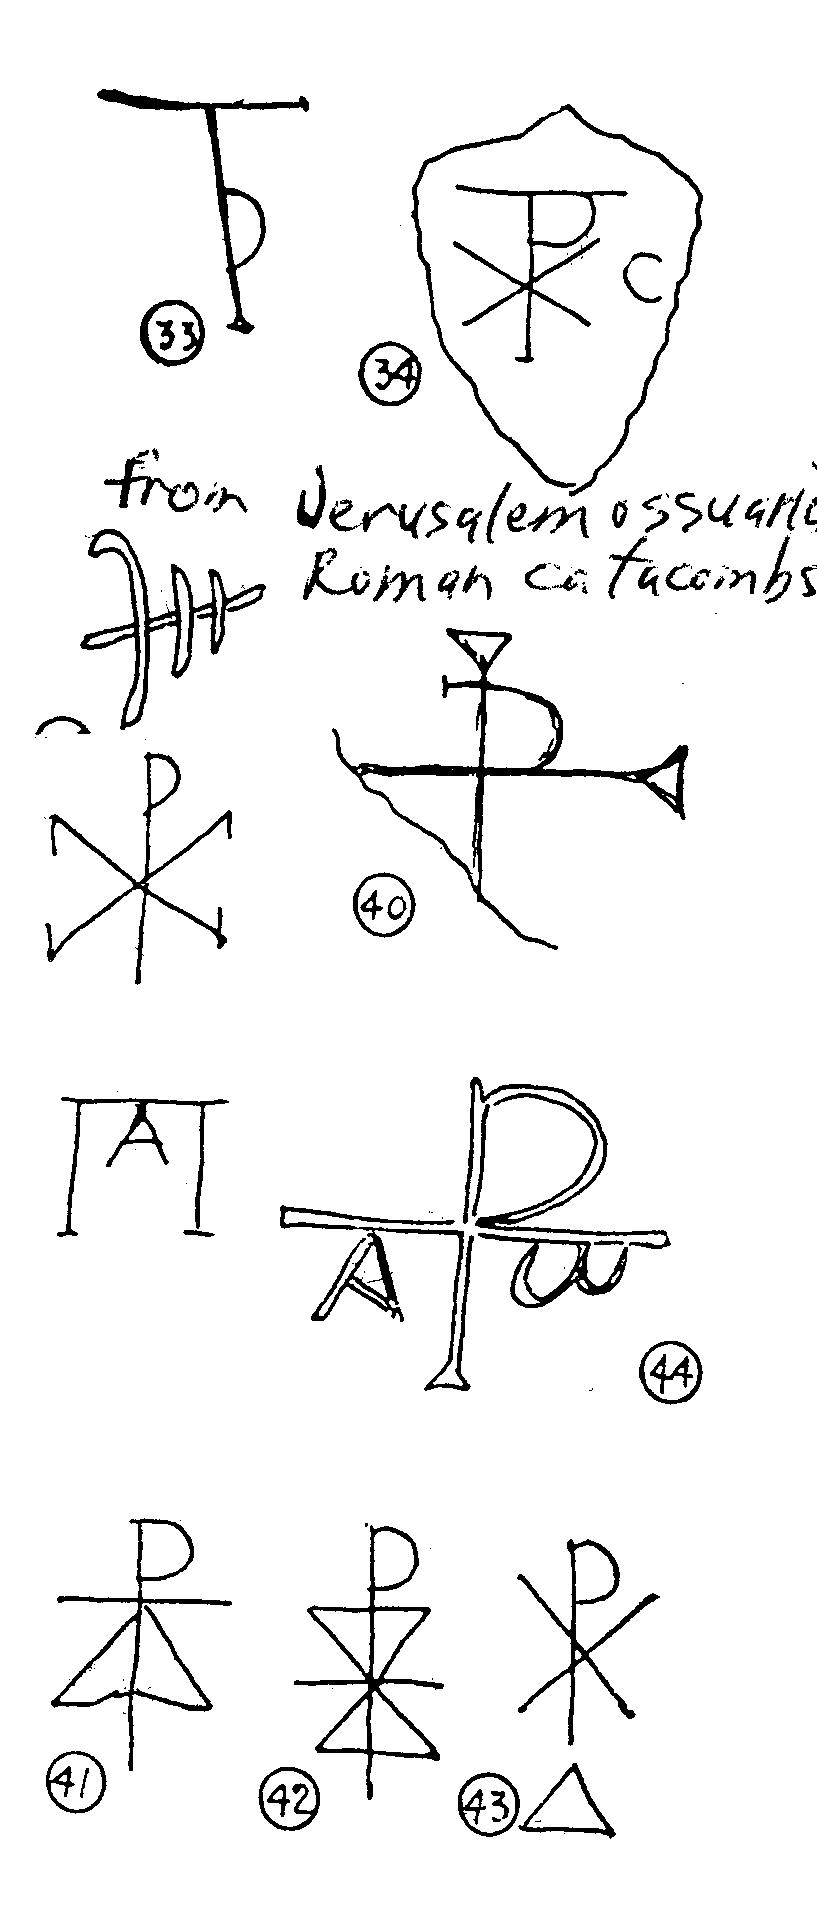 Xpgrafiti2g examples of the first two letters of christ xp and the hebrew tetragrameton yhwh inscribed on first century ossuaries in jerusalem biocorpaavc Choice Image